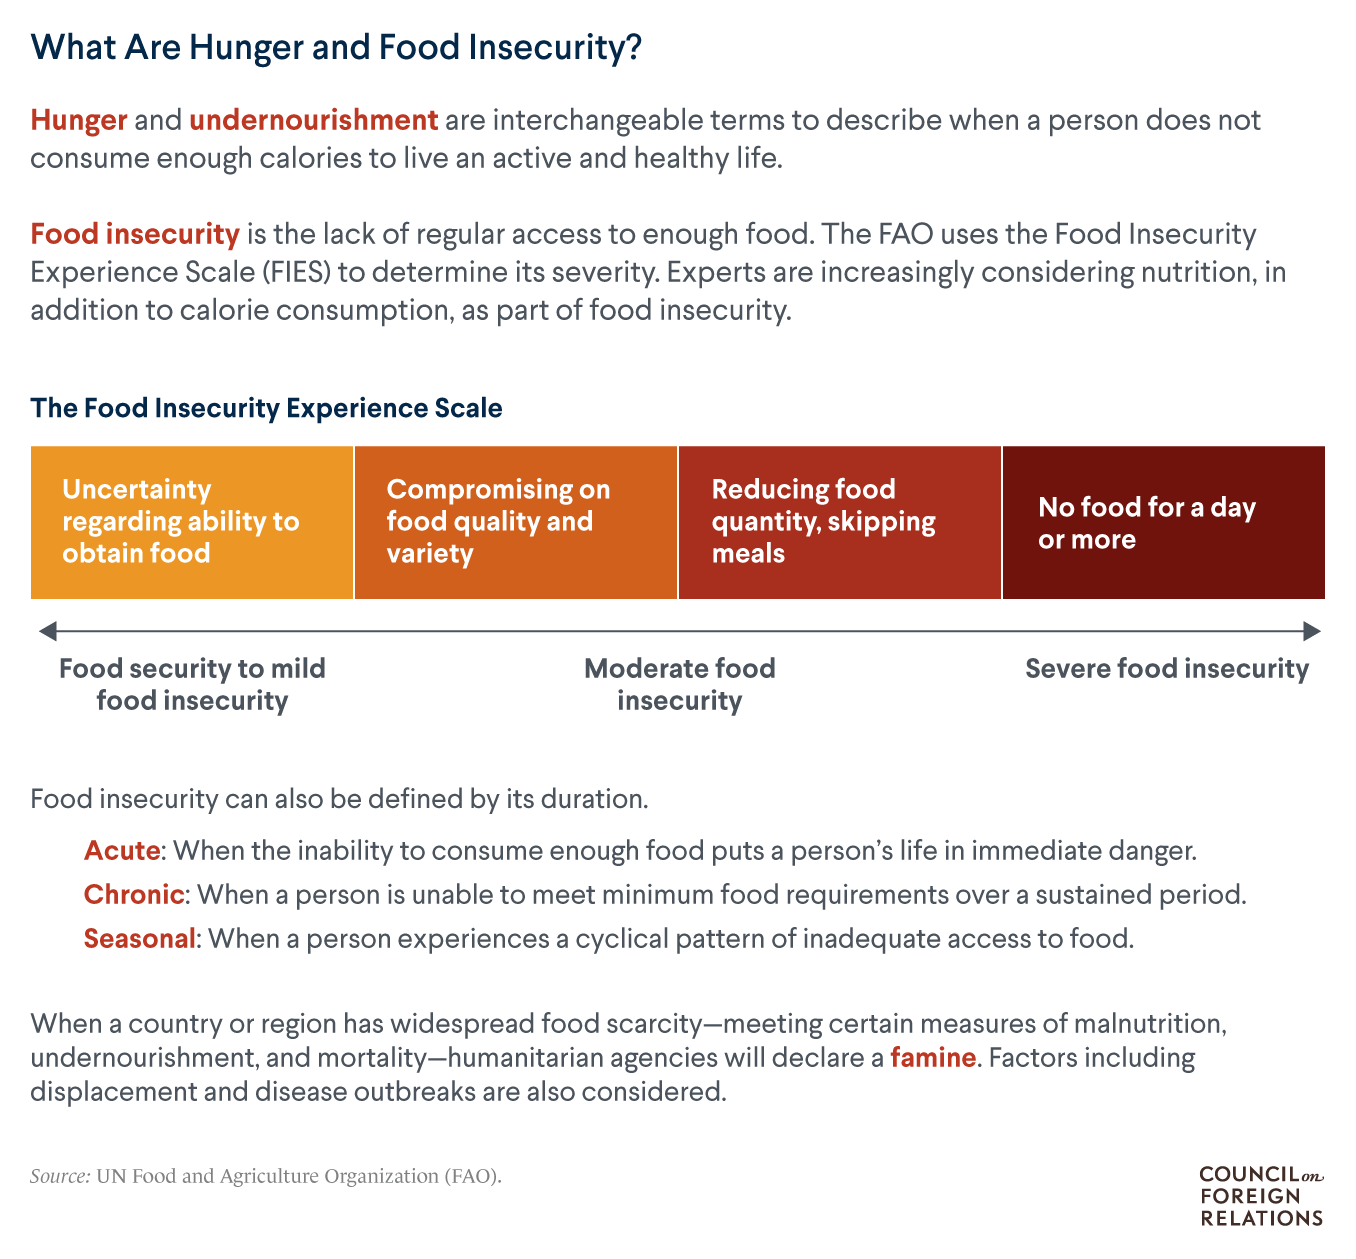 Graphic defines hunger and food insecurity, highlighting a spectrum from uncertainty over food access to acute hunger.